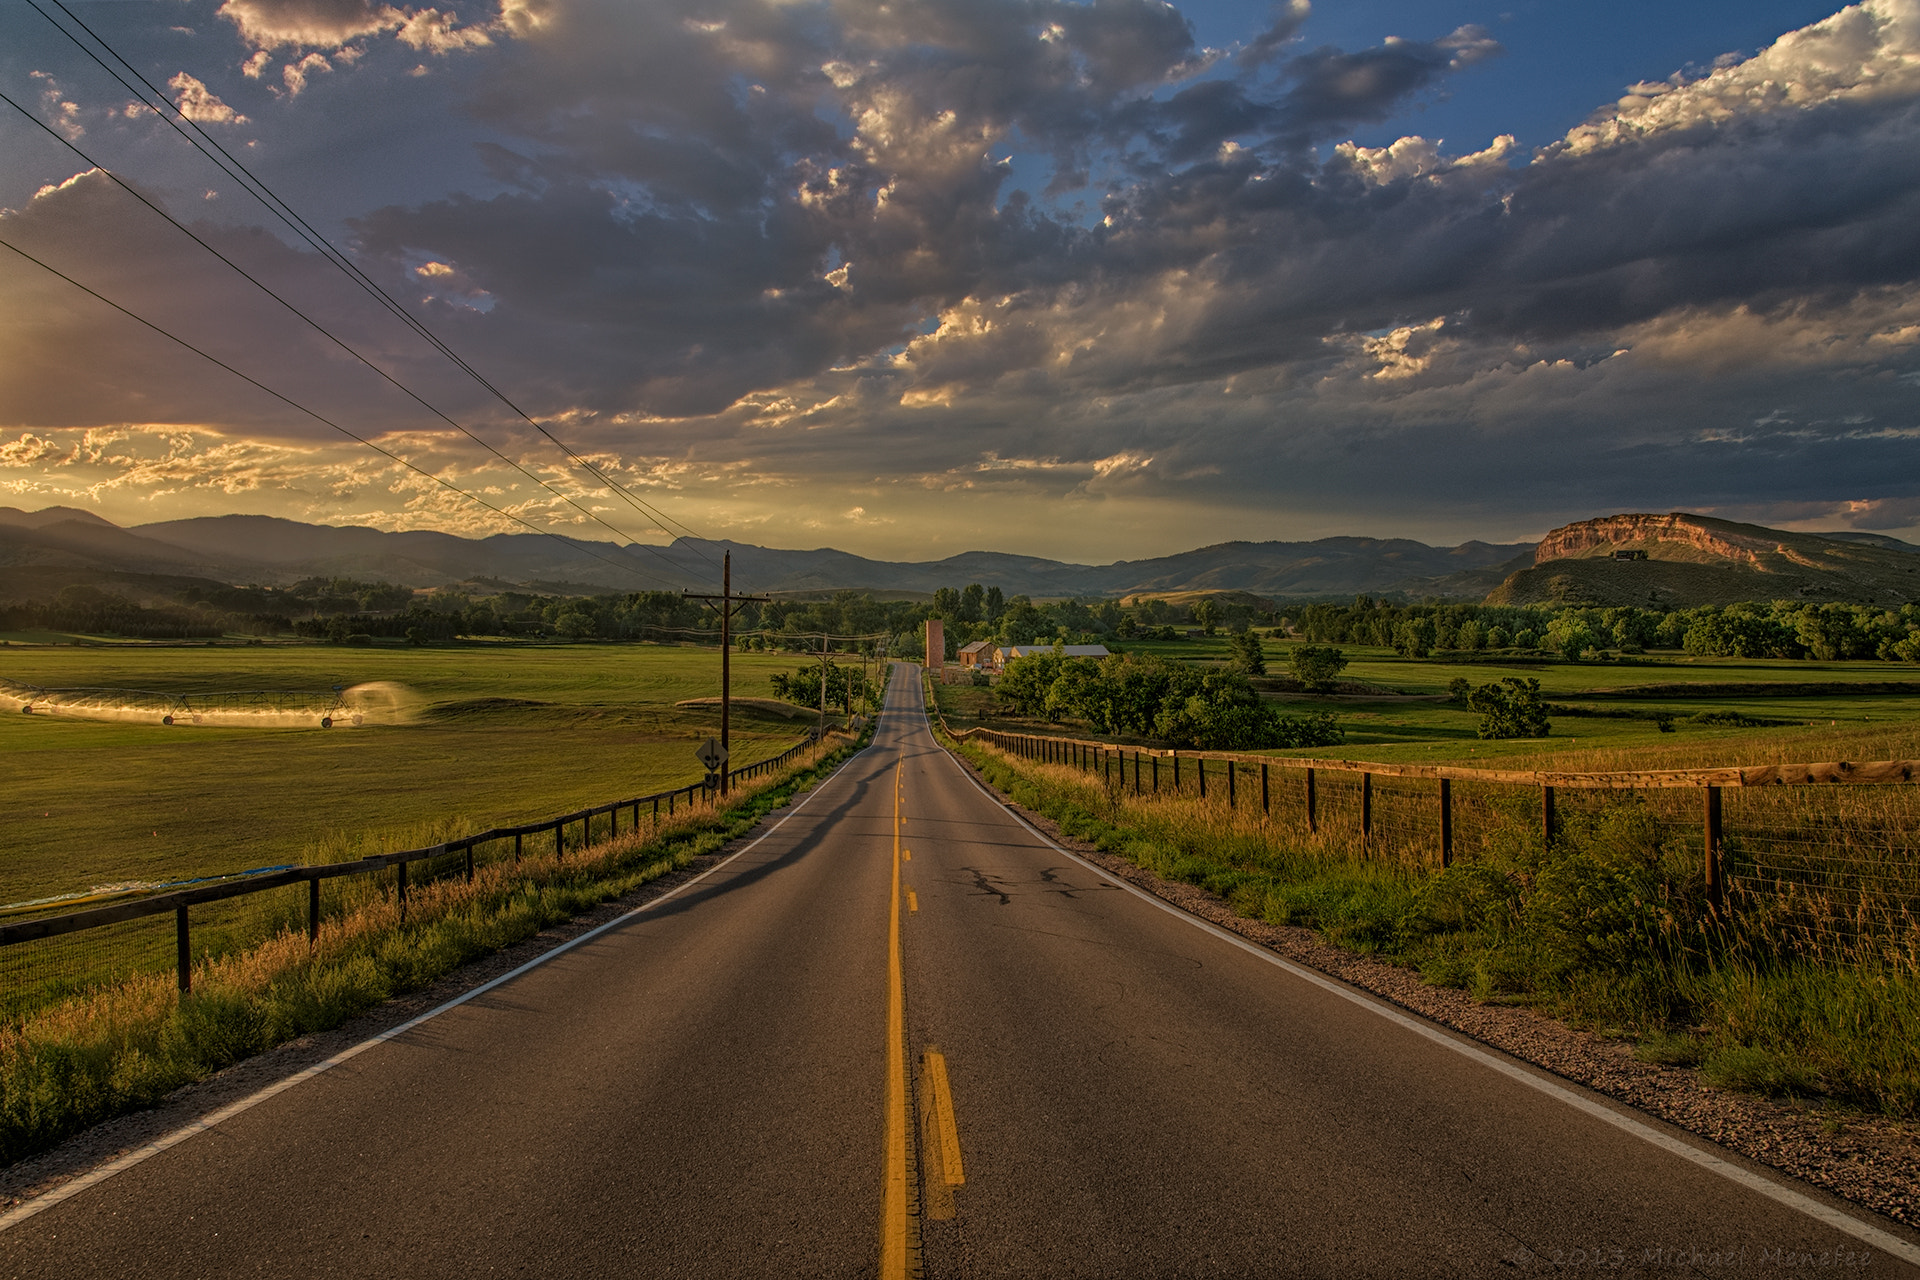 Photograph Driving Into Serenity by Michael Menefee on 500px